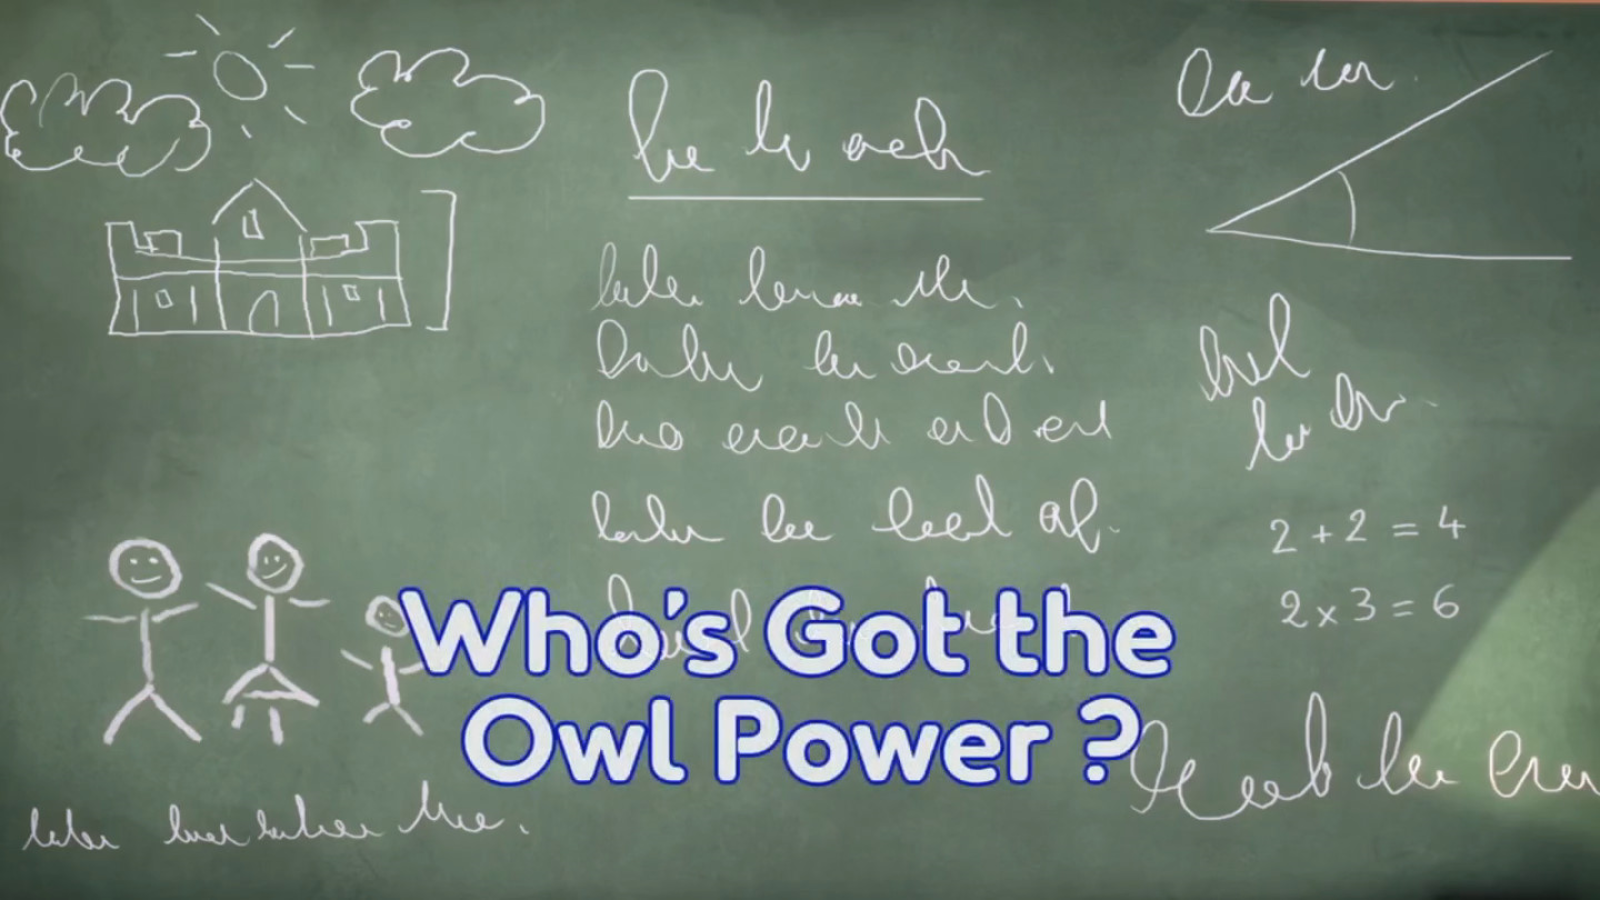 Owl Quotes | Who S Got The Owl Power Quotes Pj Masks Wiki Fandom Powered By